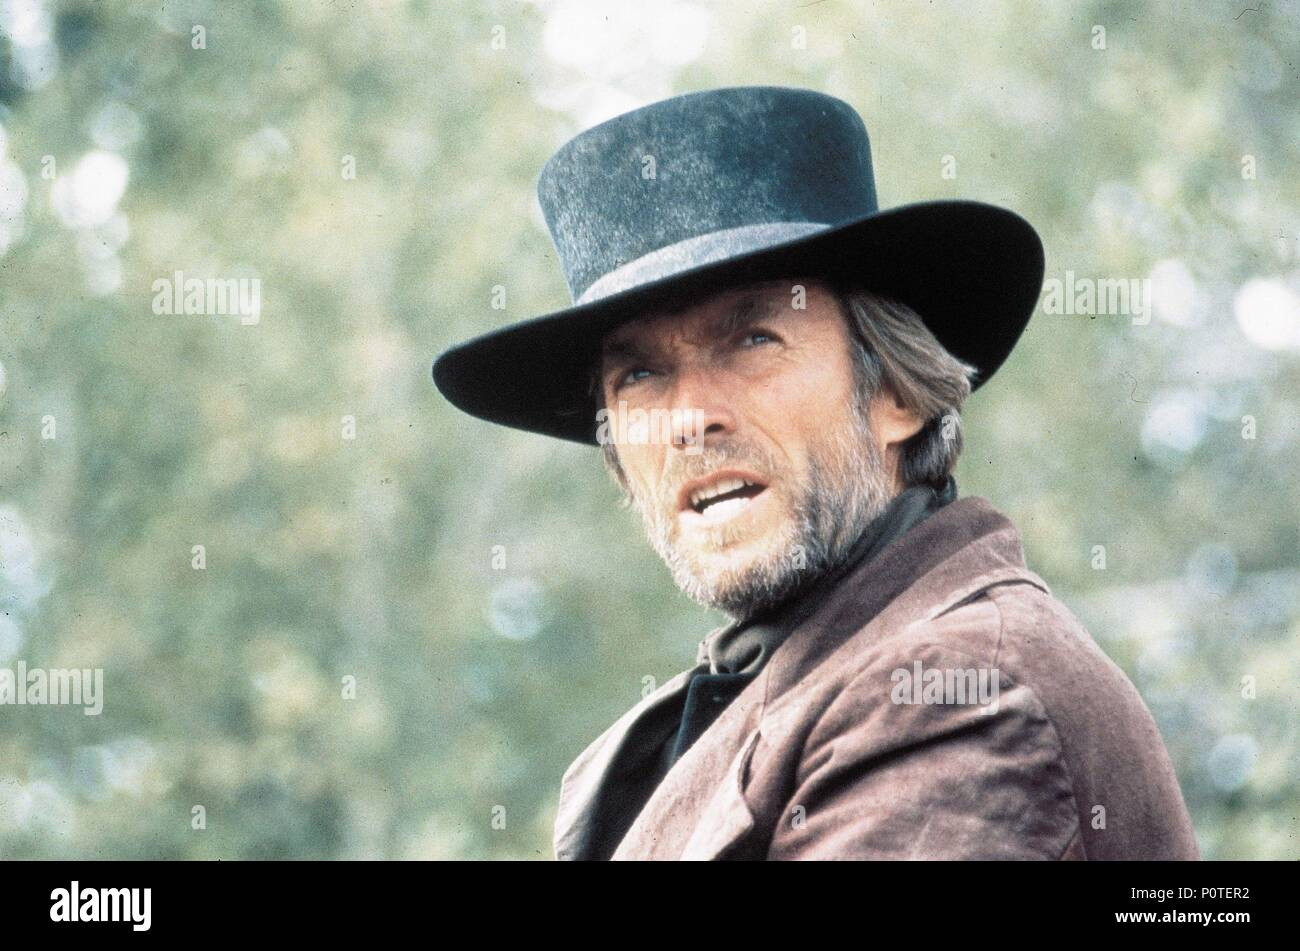 Original Film Title  PALE RIDER. English Title  PALE RIDER. Film Director  CLINT  EASTWOOD. Year  1985. Stars  CLINT EASTWOOD. Credit  WARNER BROTHERS   ... 85525082216